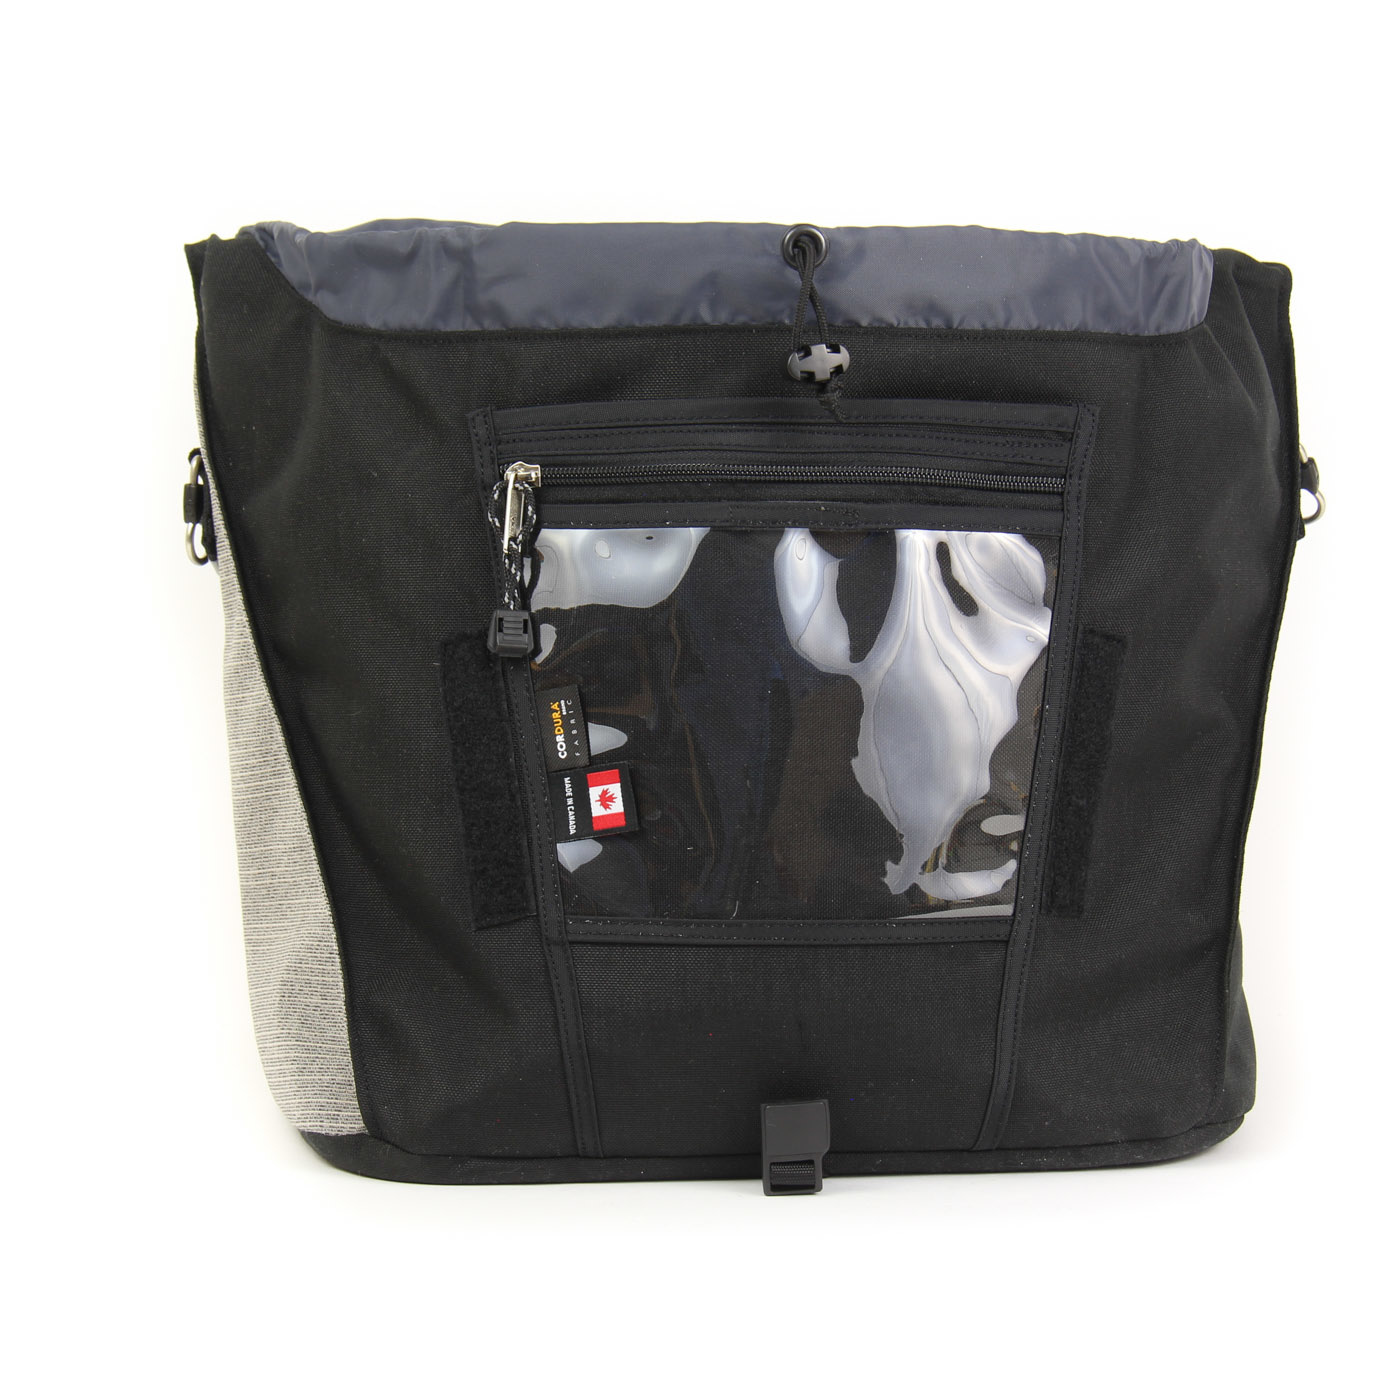 Arkel Arkel Briefcase Urban Pannier (unit)